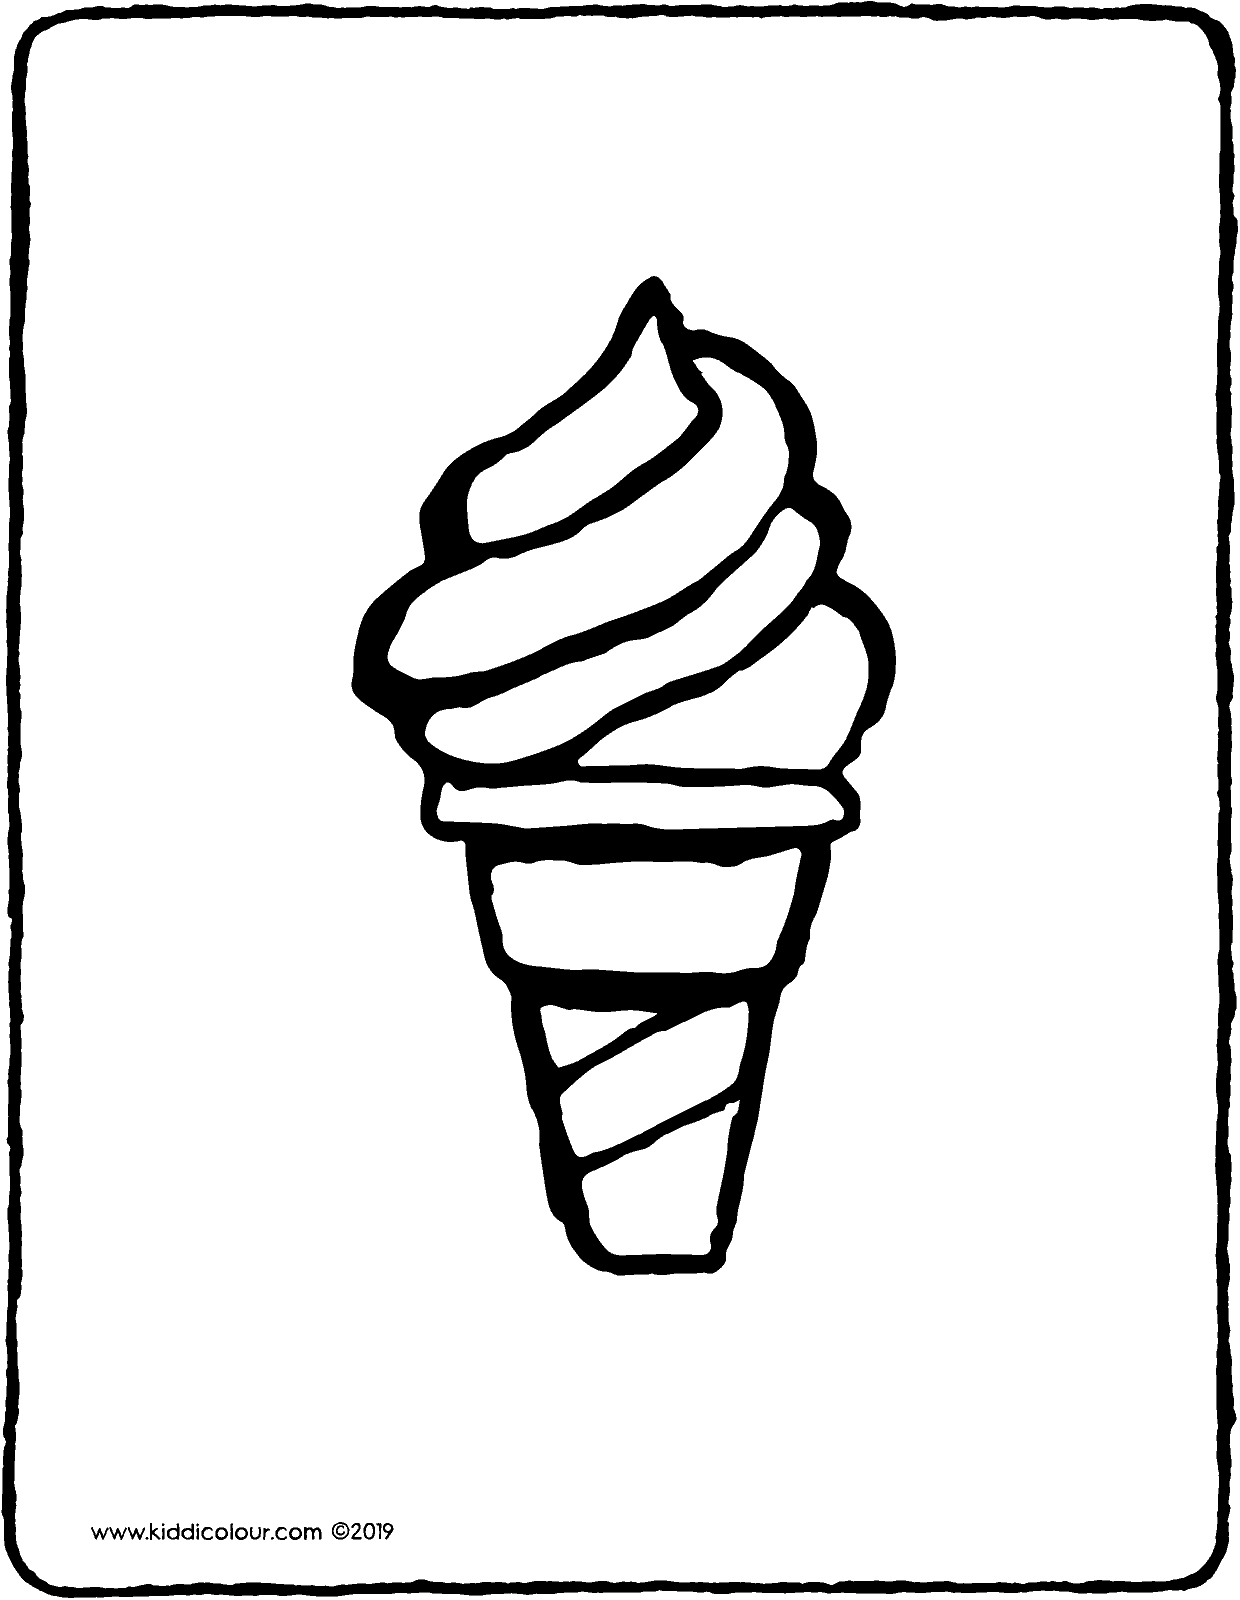 Soft Serve Ice Cream Kiddicolour